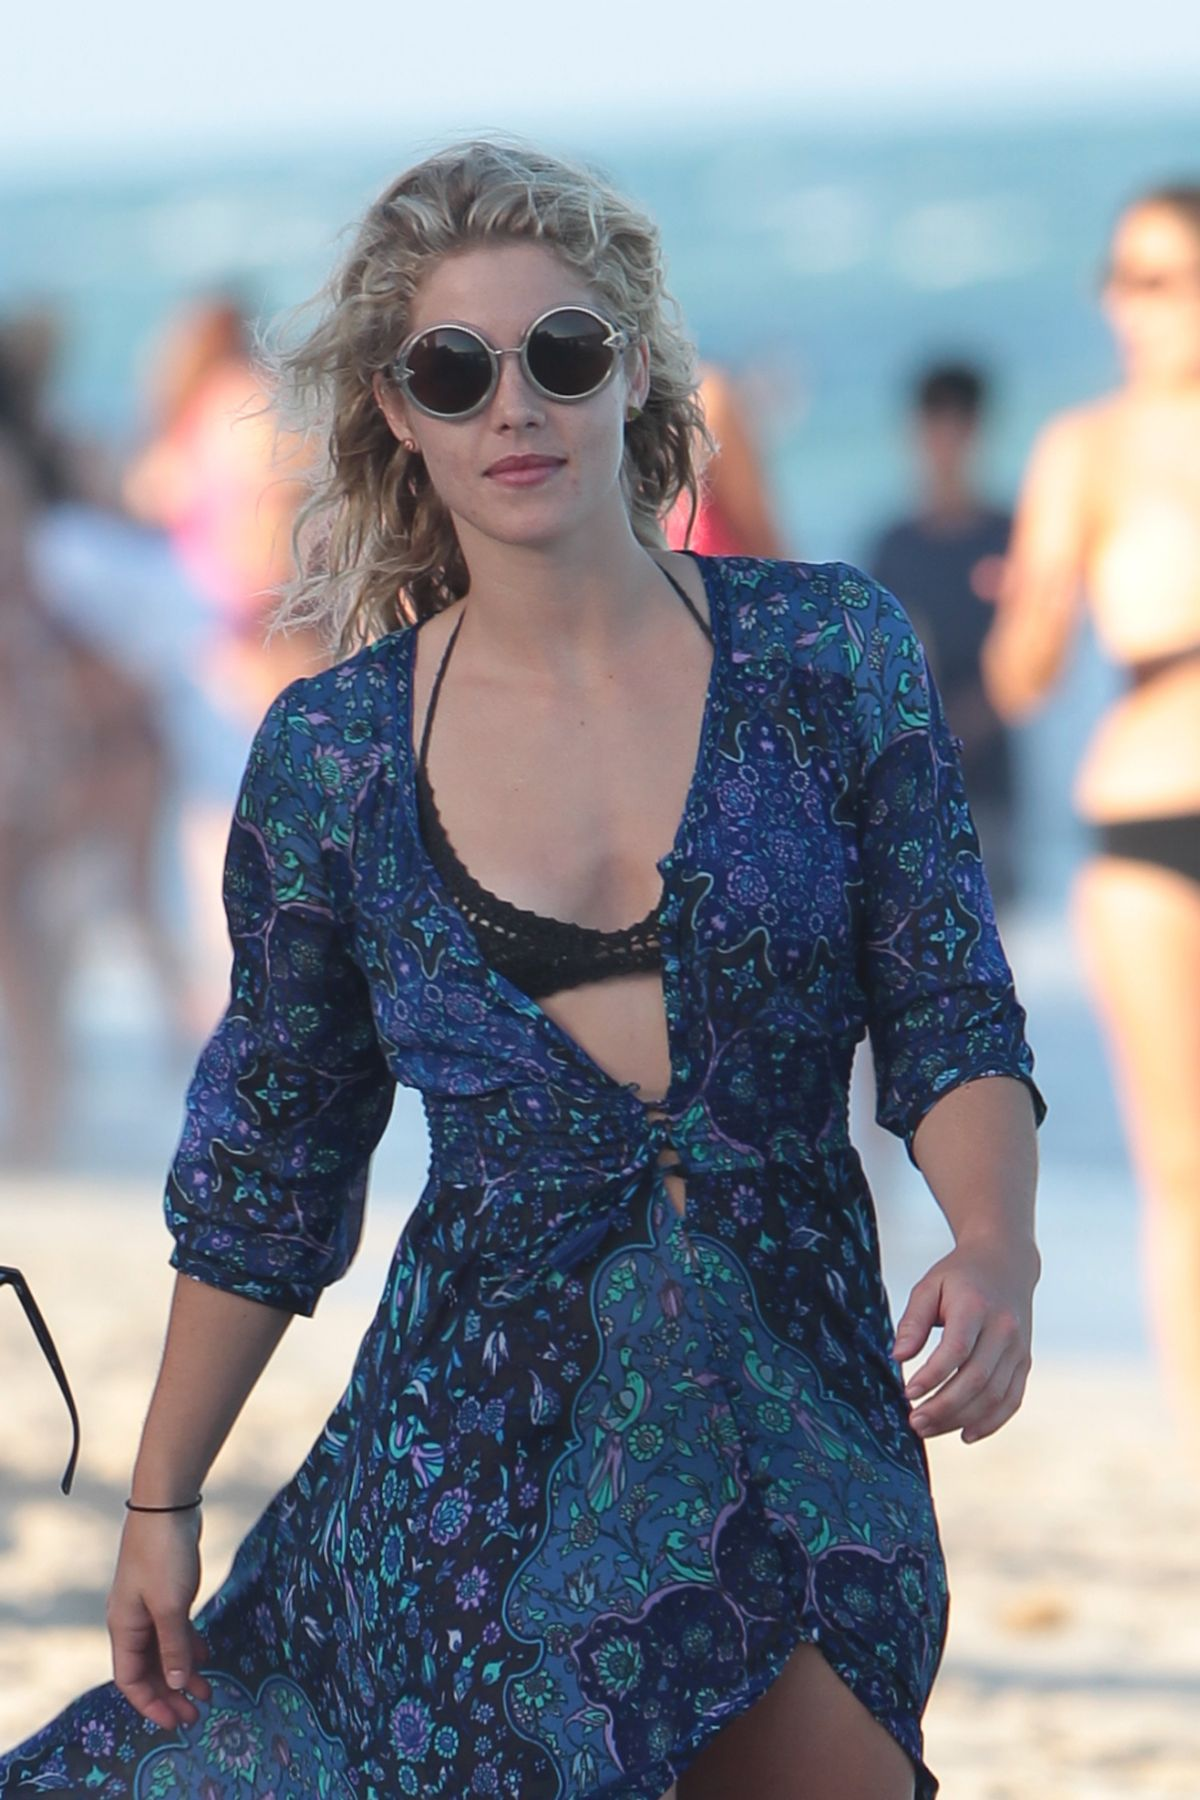 EMILY BETT RICKARDS at a Beach in Miami 12/31/2015